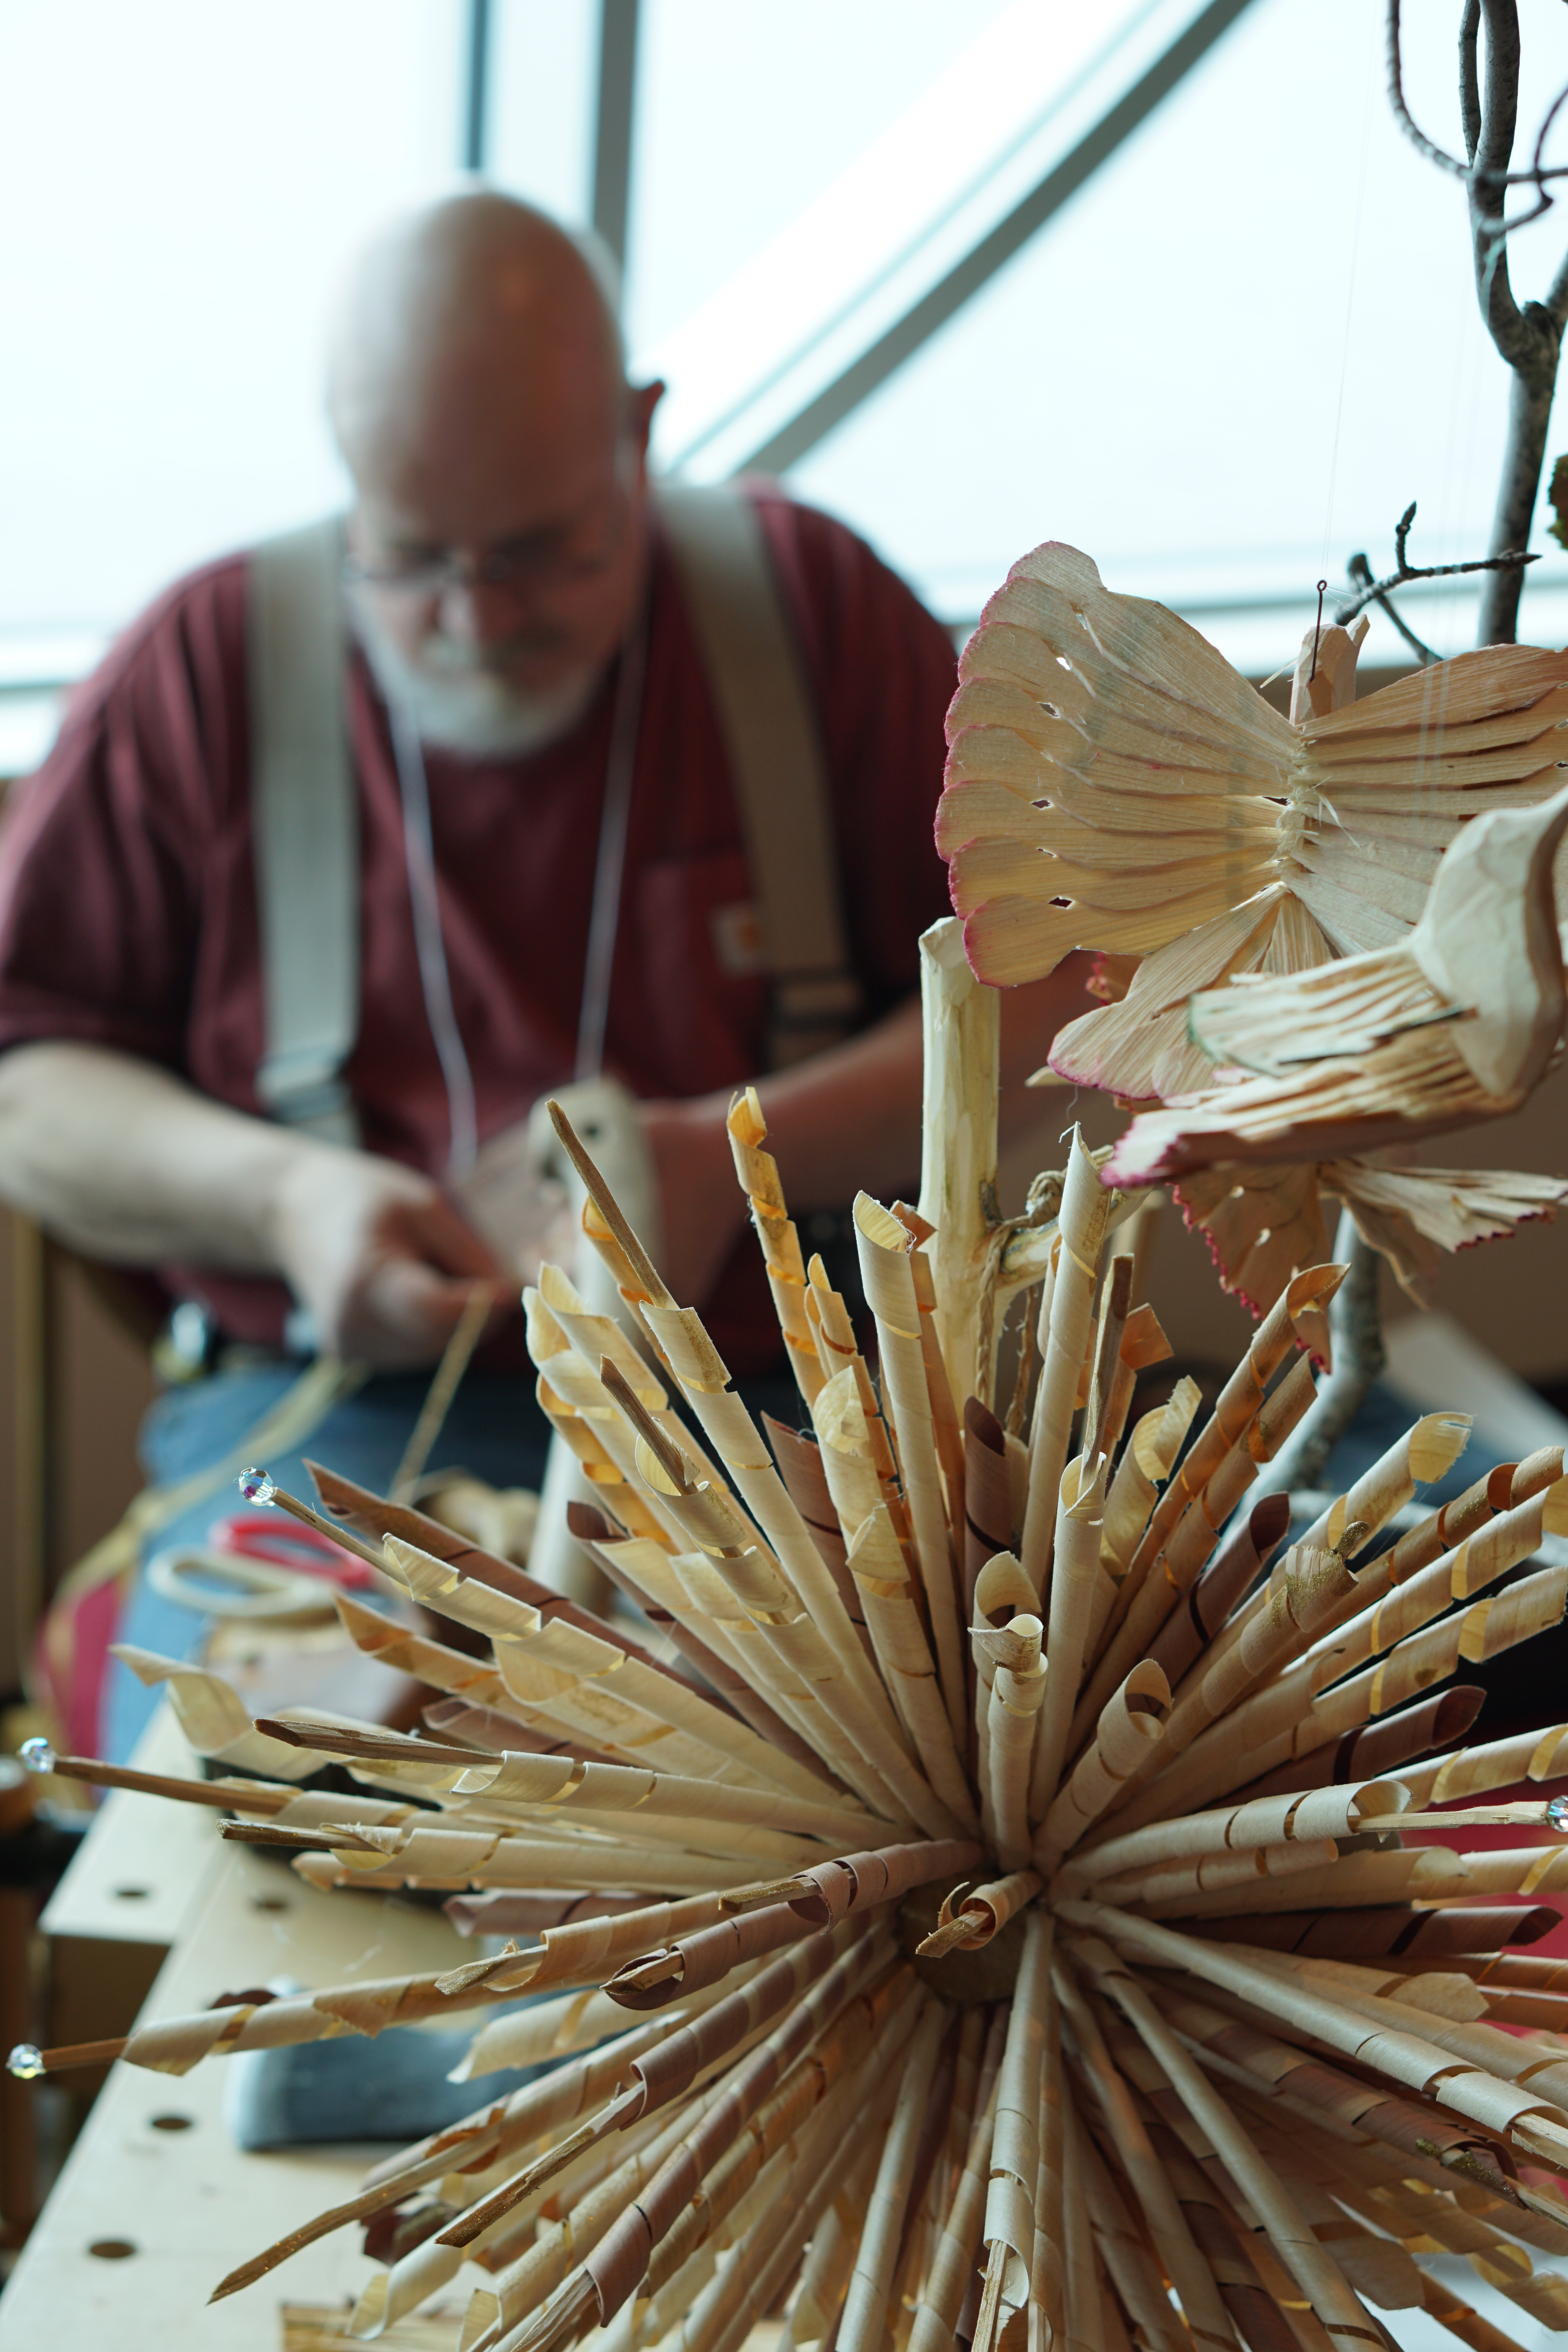 Pekka Olson works on a new wood carving